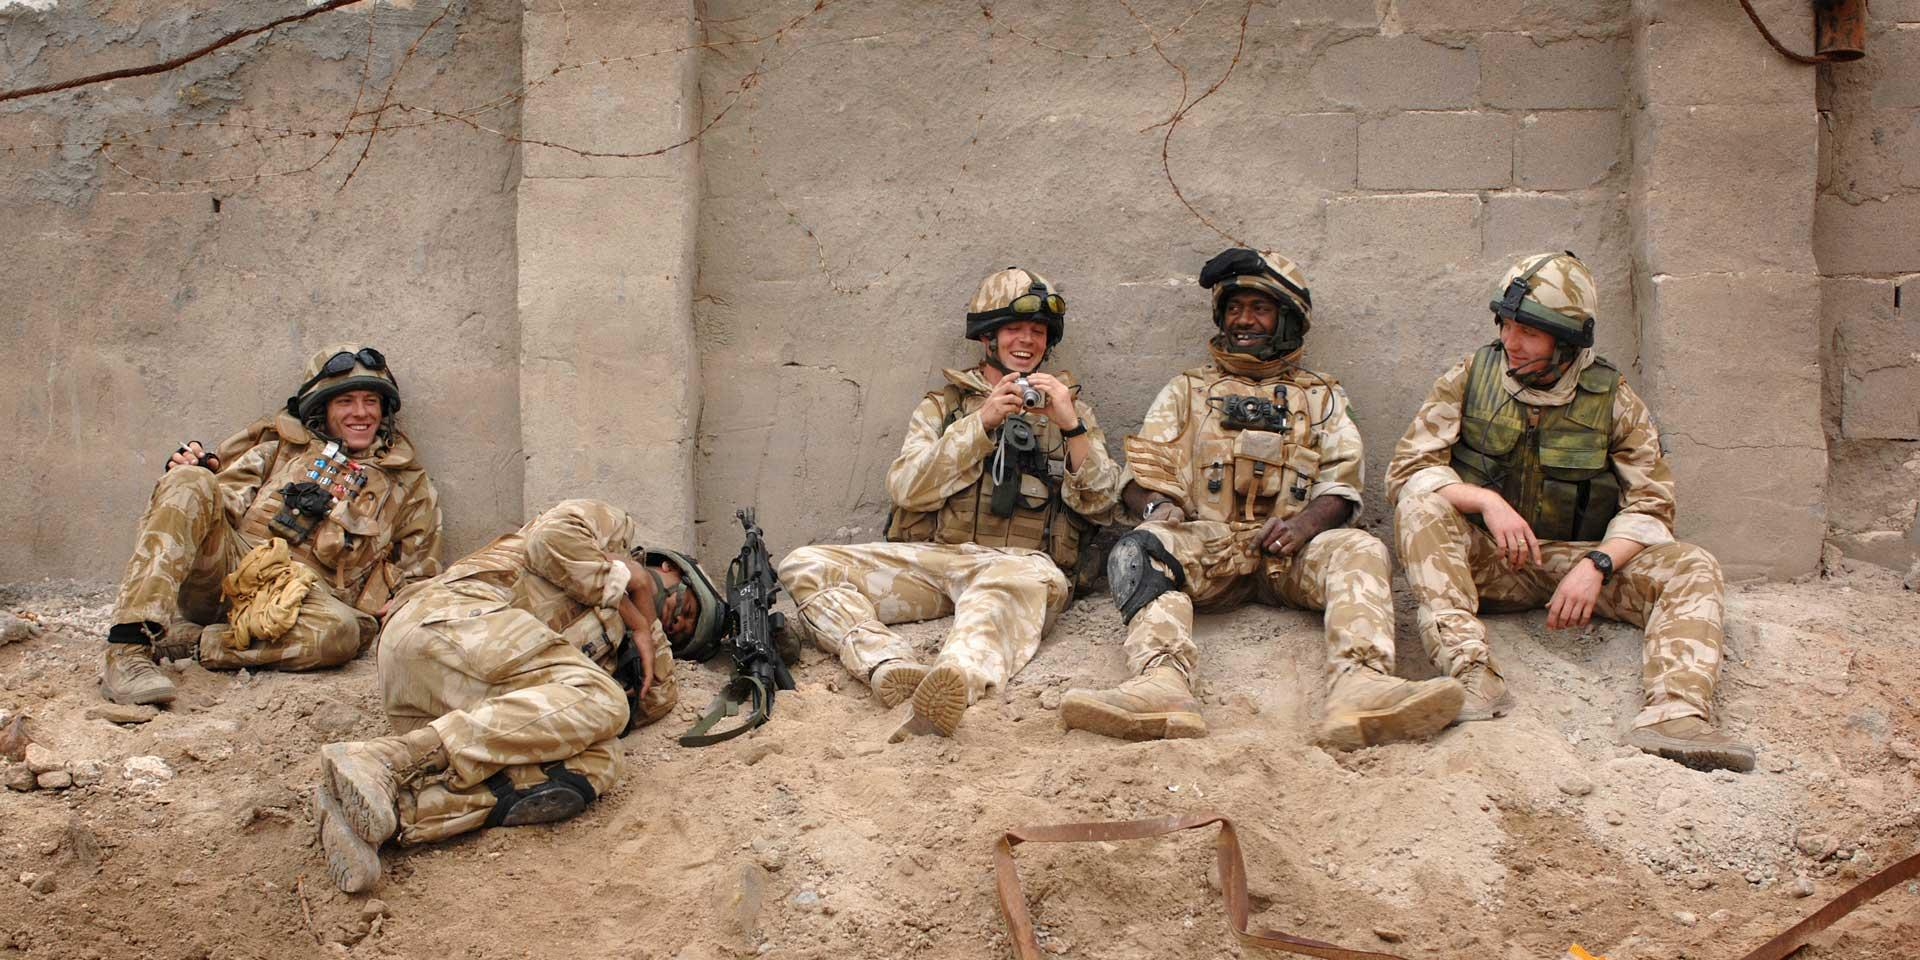 Soldiers of the Royal Green Jackets take a break during Operation Sinbad in Basra, February 2007